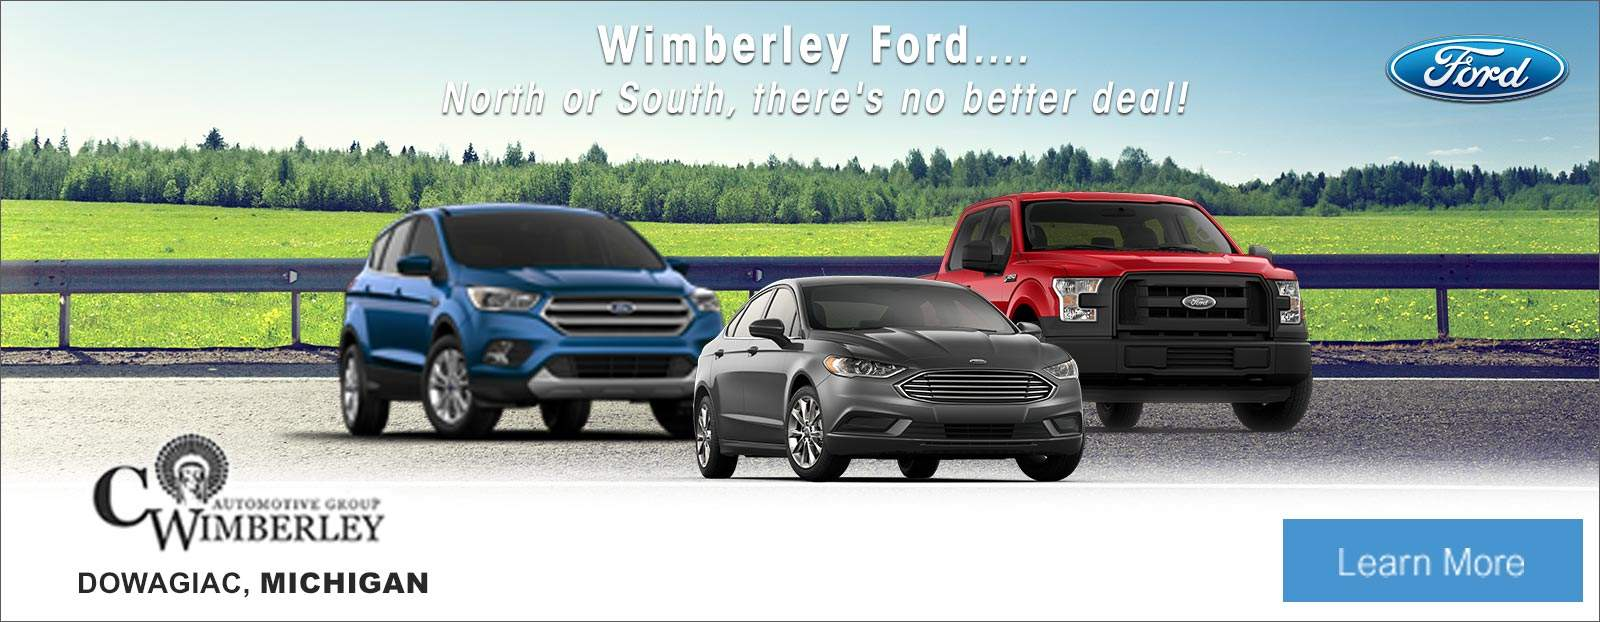 New & Used Vehicles from Ford, Chevrolet, Buick and GMC